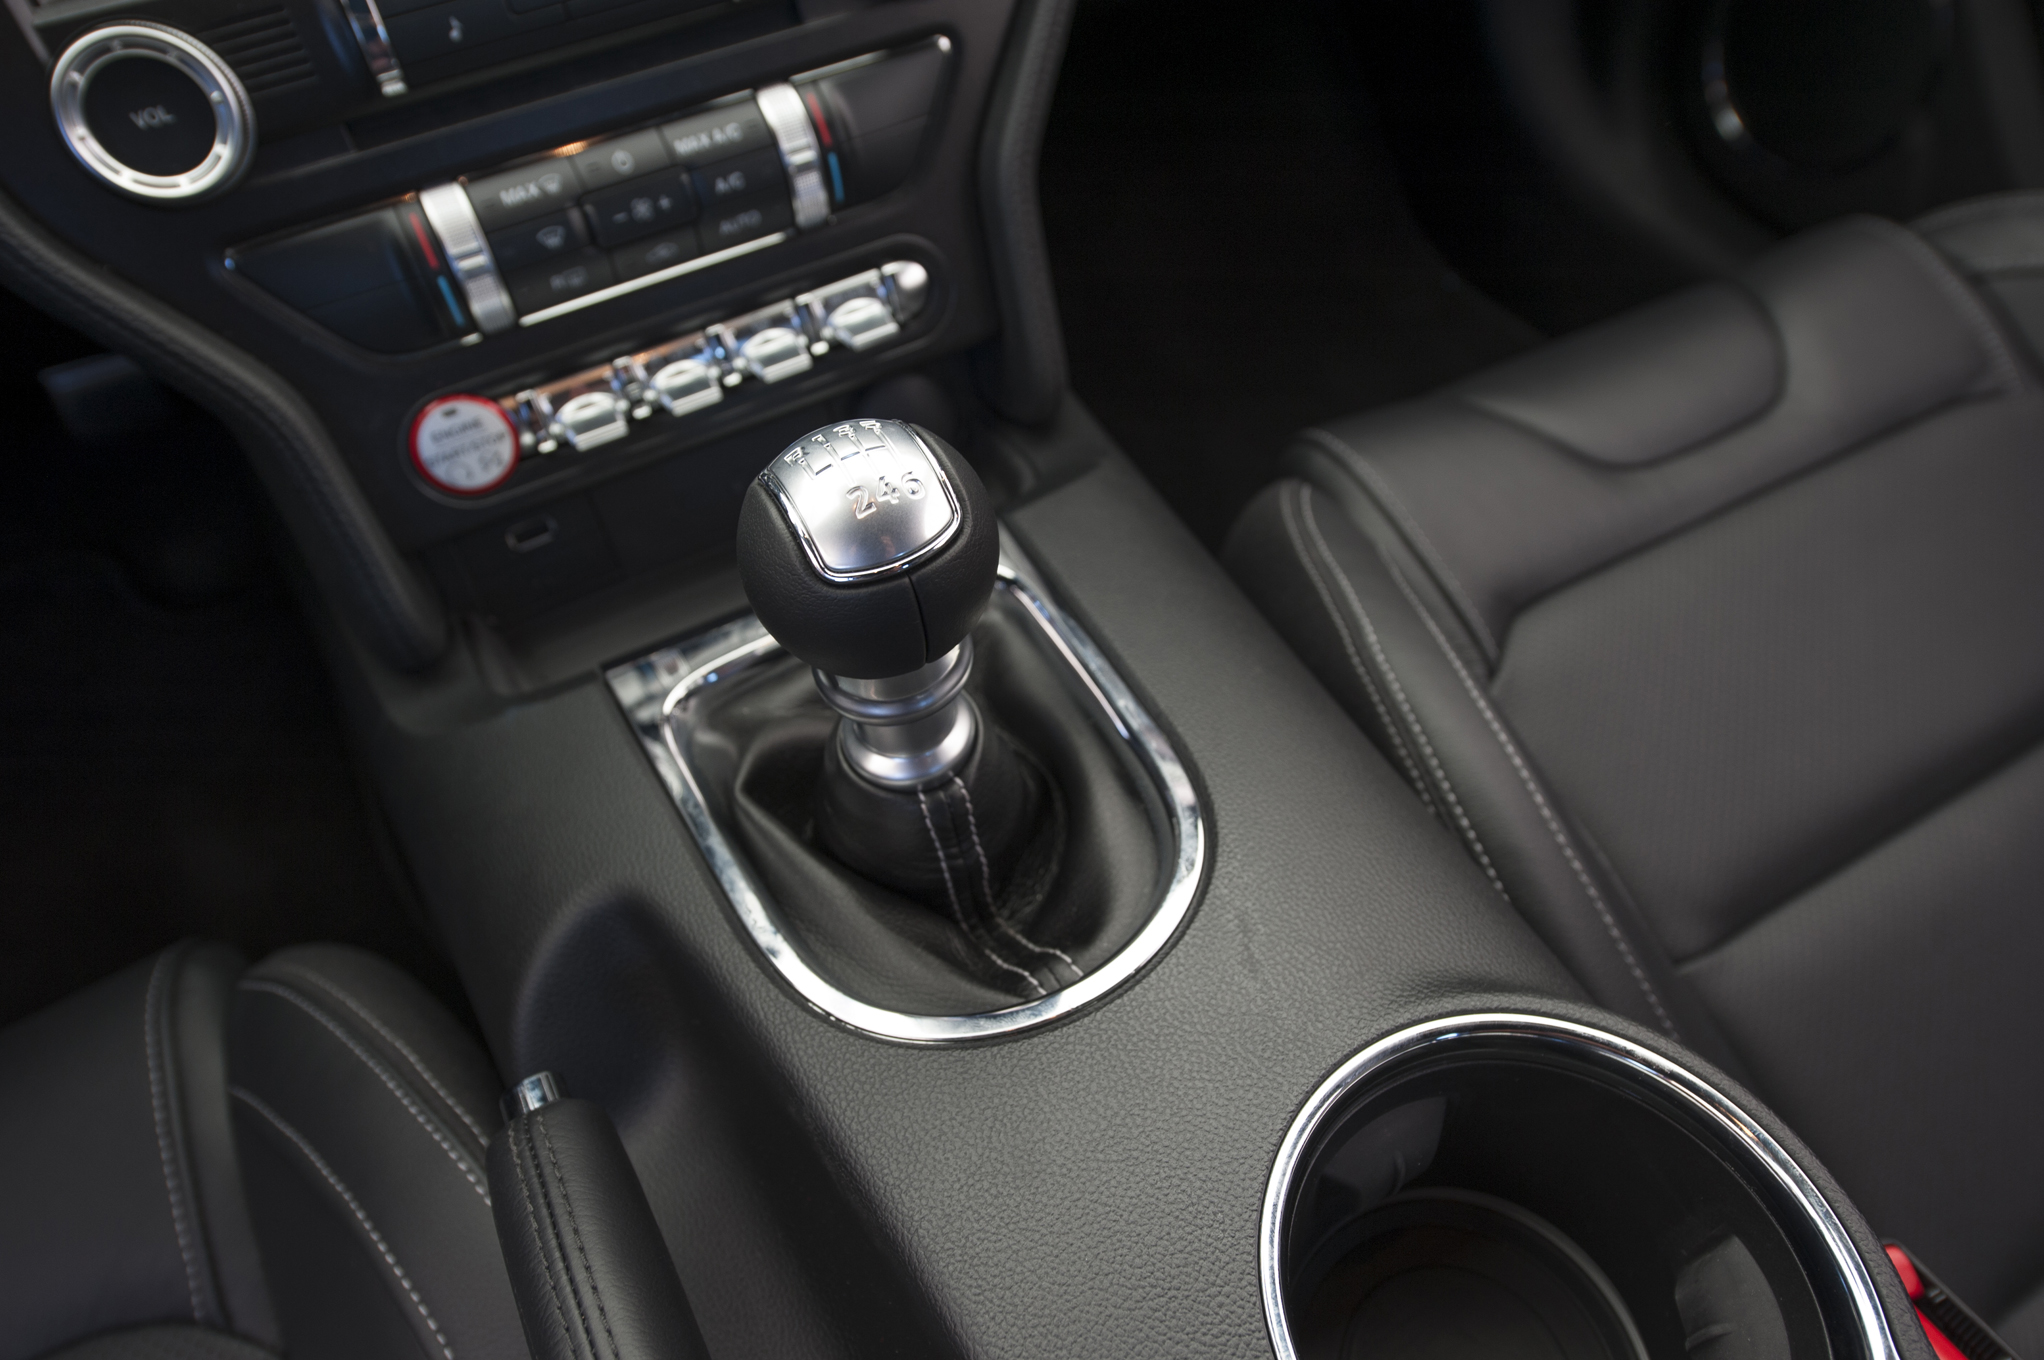 2015 Ford Mustang GT Gear Shift Knob